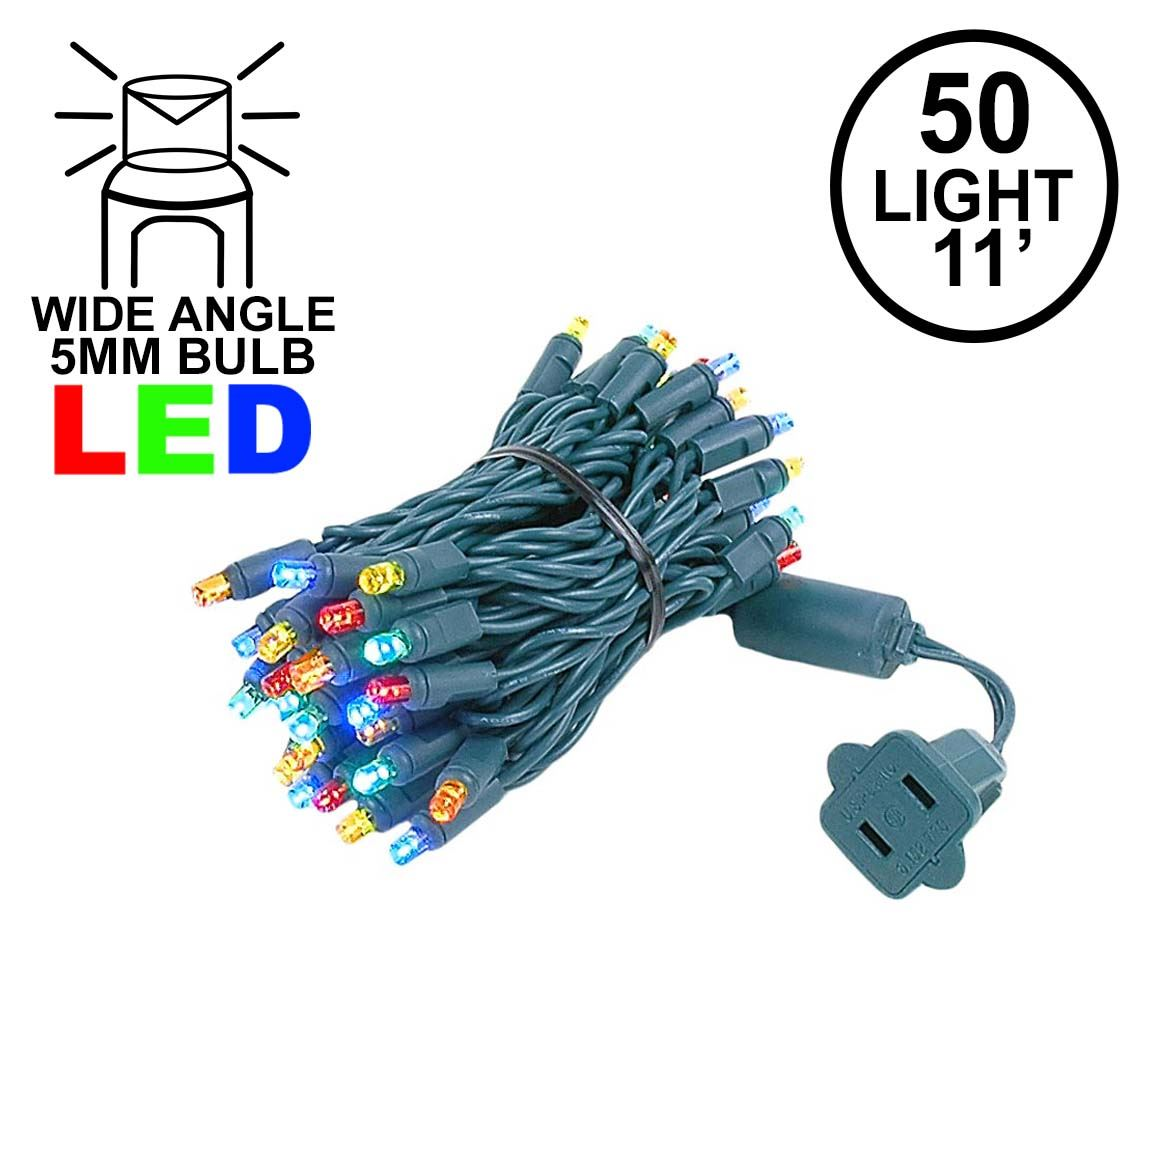 Picture of 50 LED Multi LED Christmas Lights 11' Long